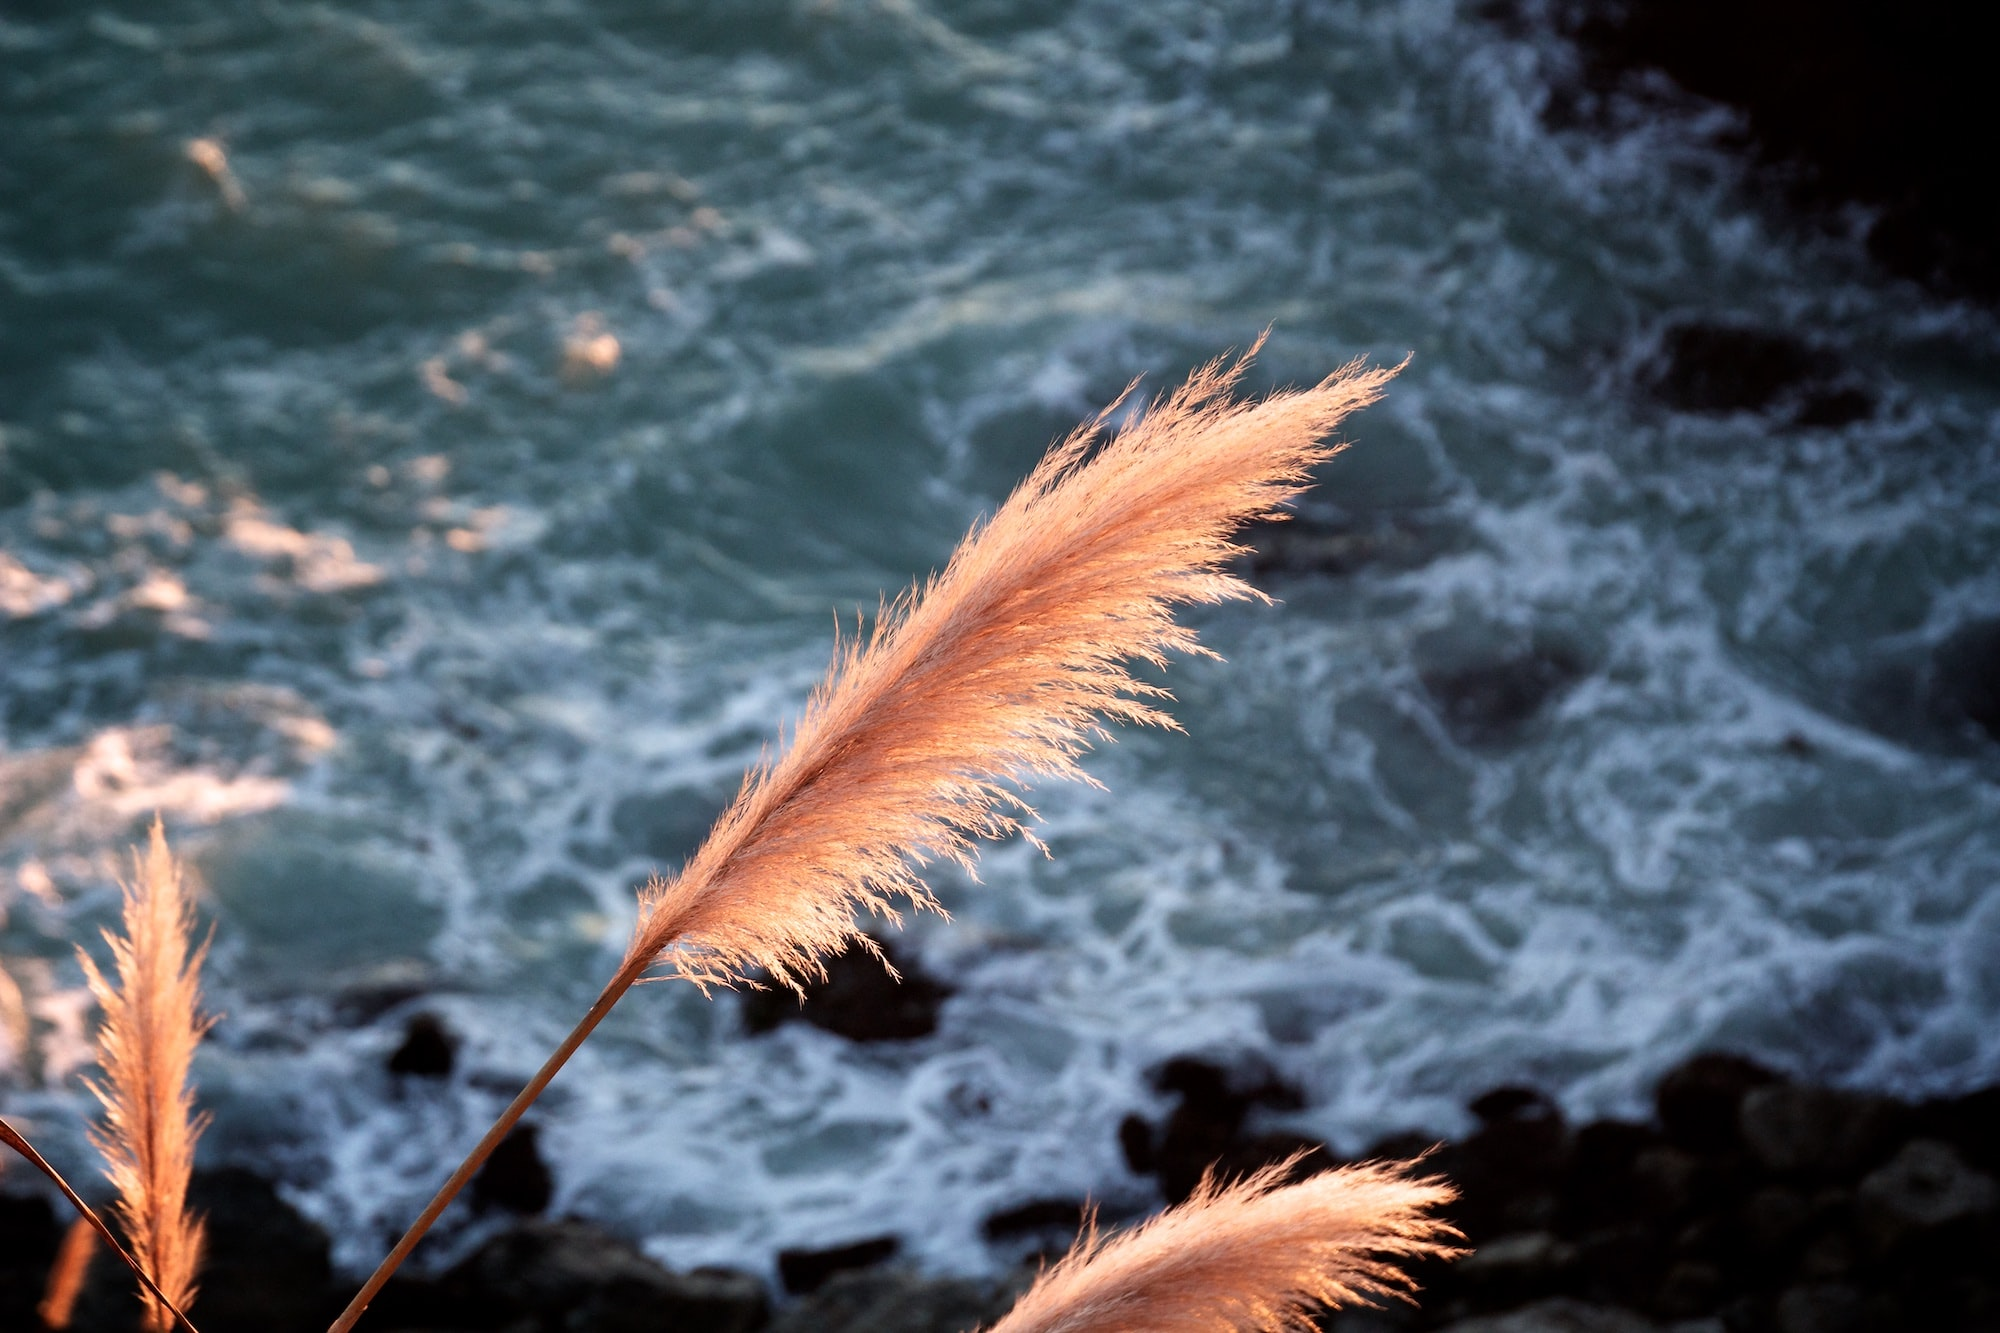 A close-up of several orange feathers above sea waves crashing against the sun